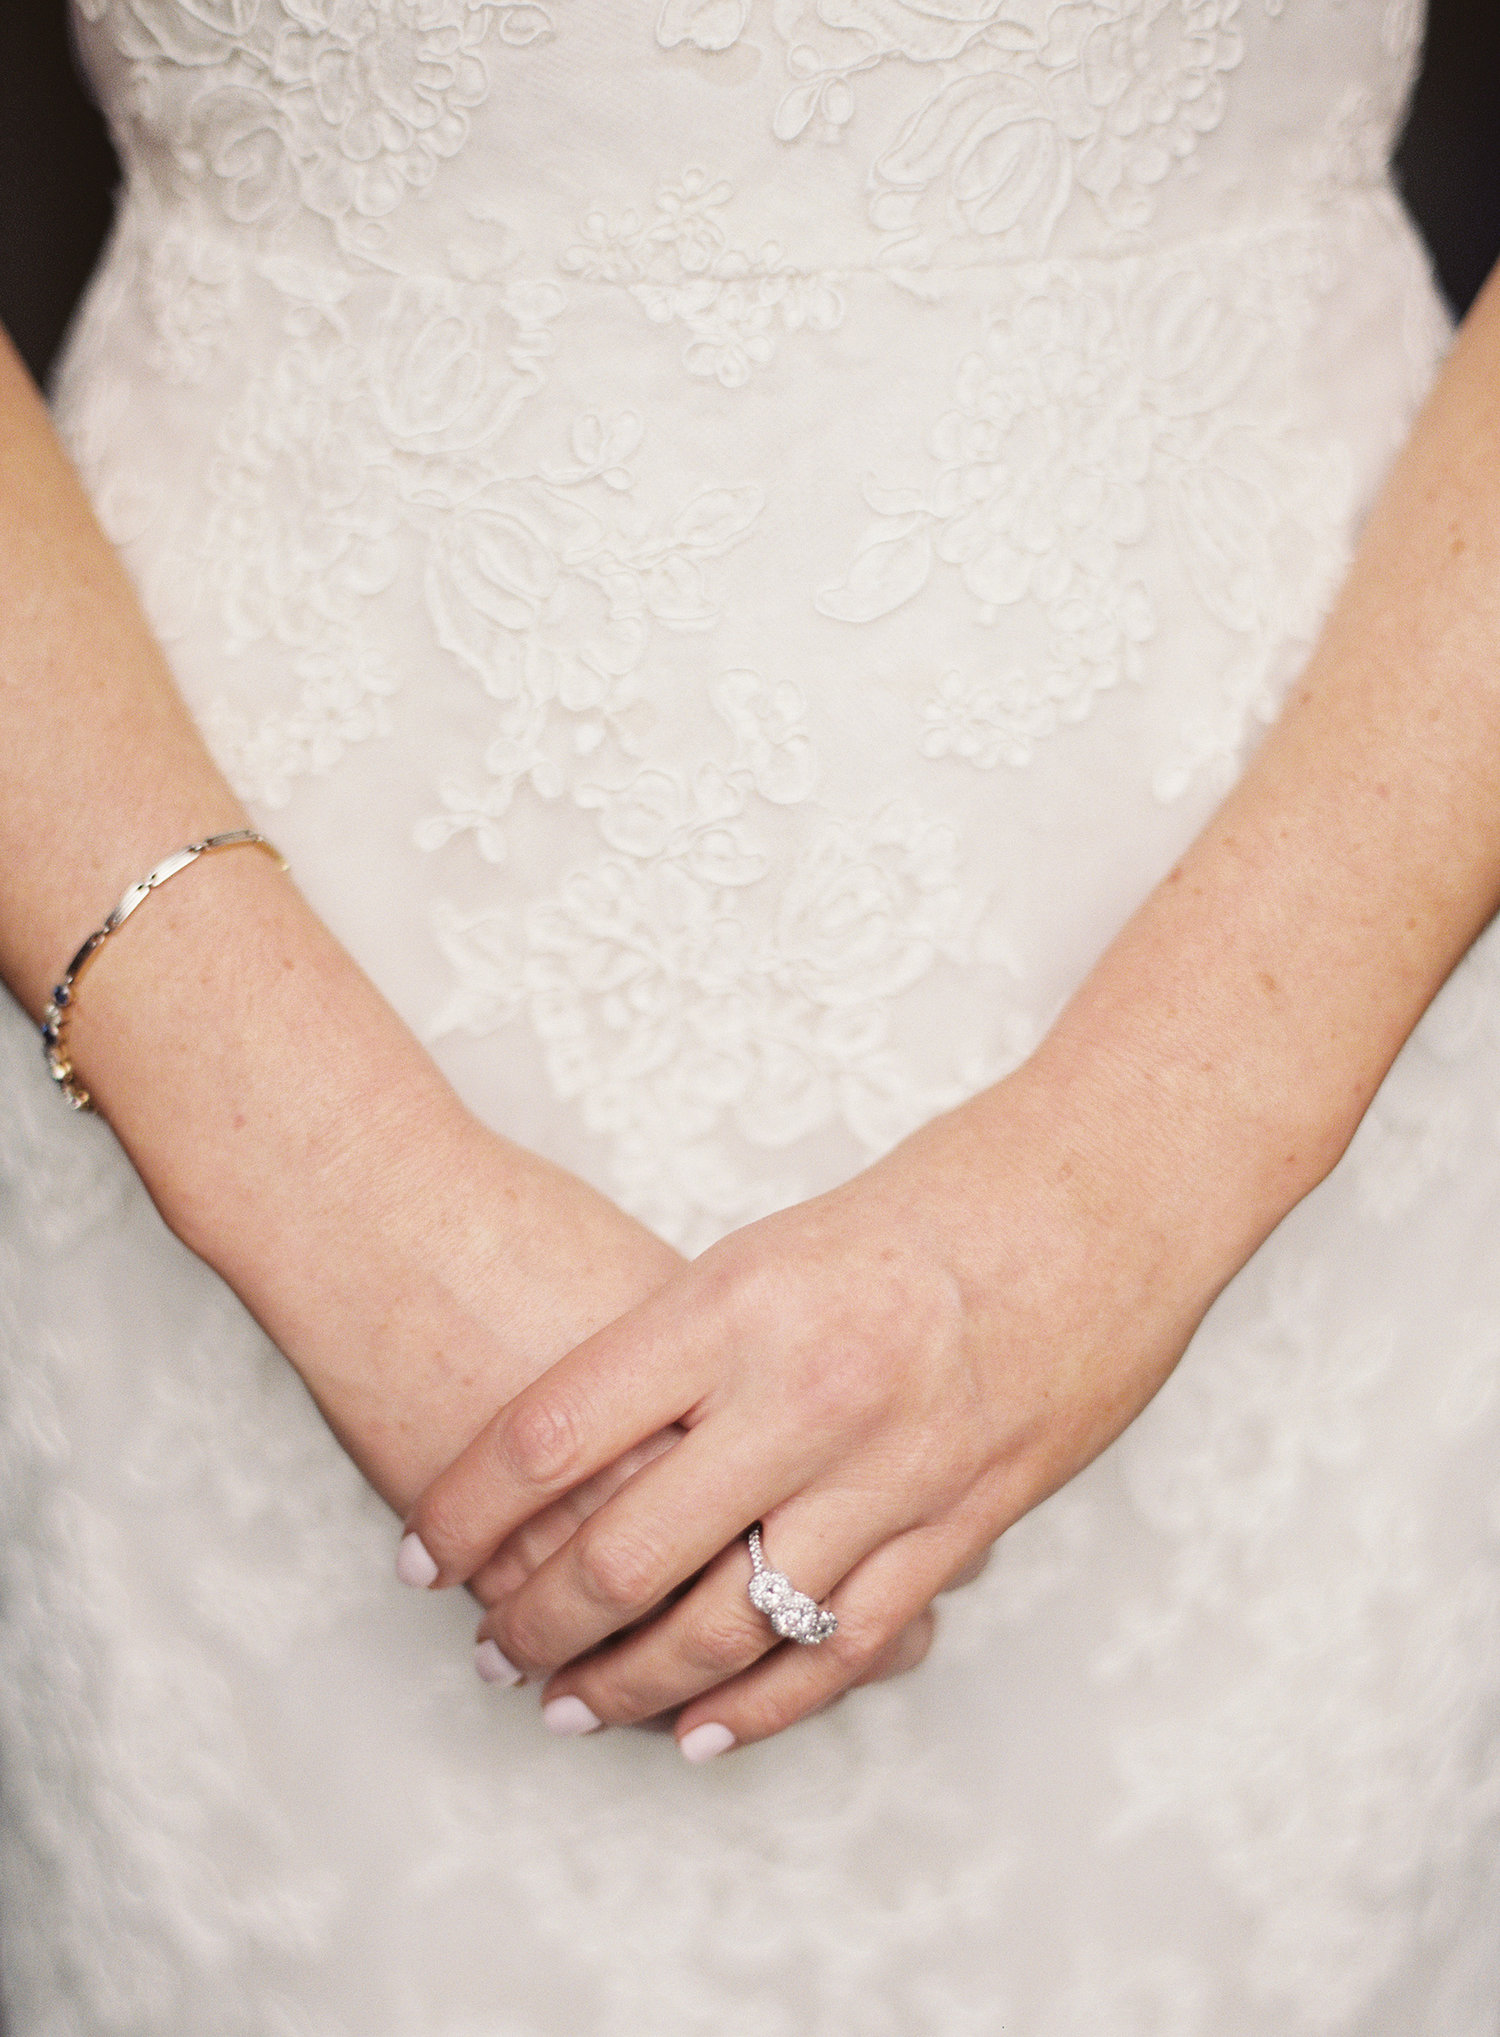 close up photo oh brides stitching on her wedding gown and her gorgeous three stone engagement ring